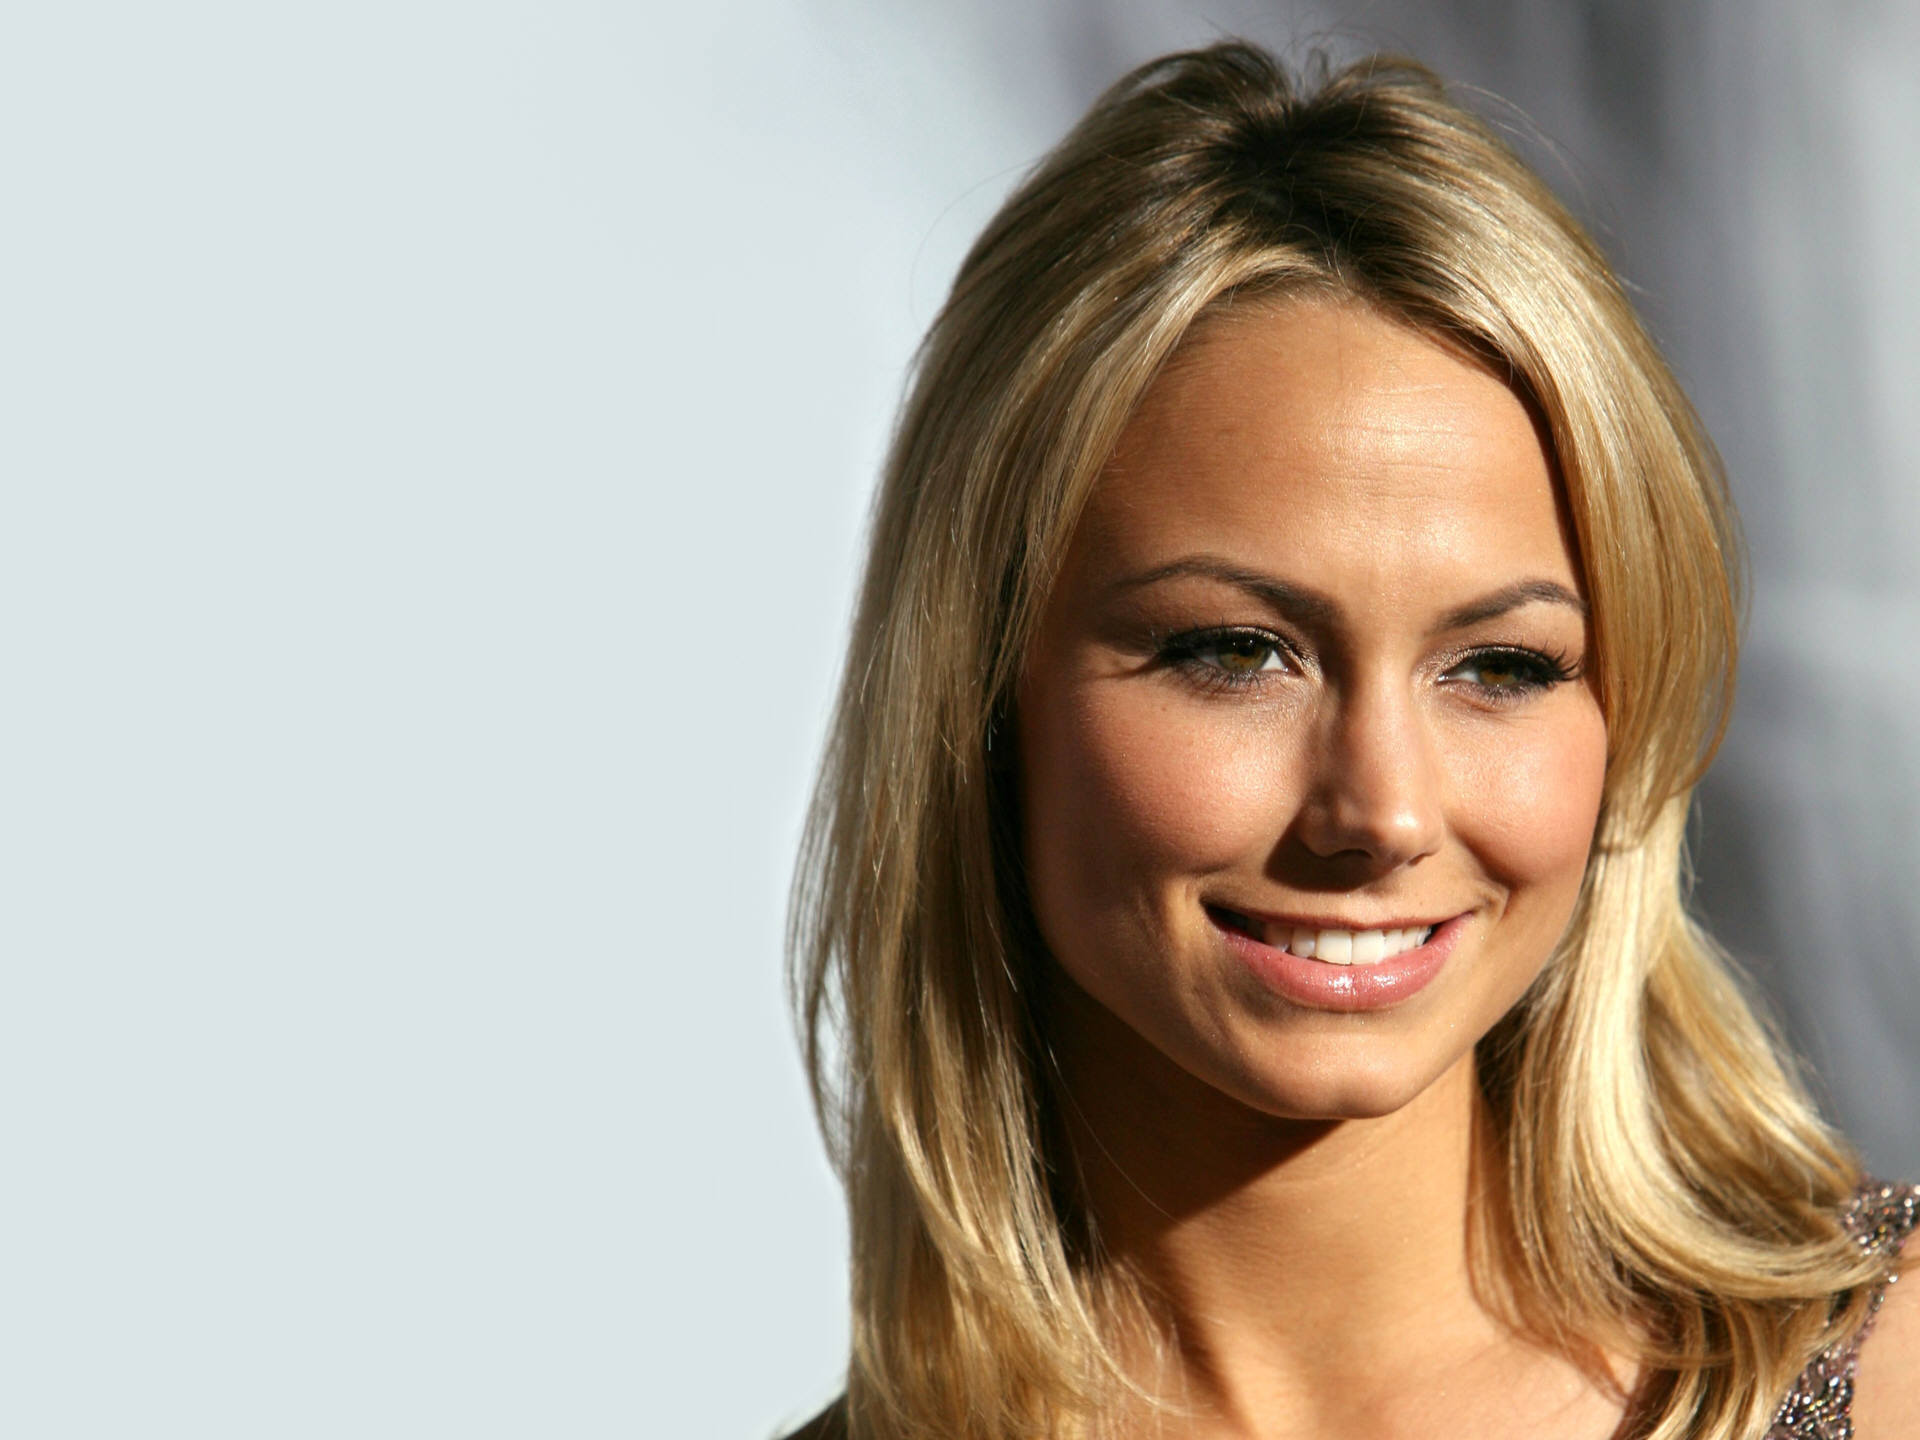 stacy keibler picture - photo #40